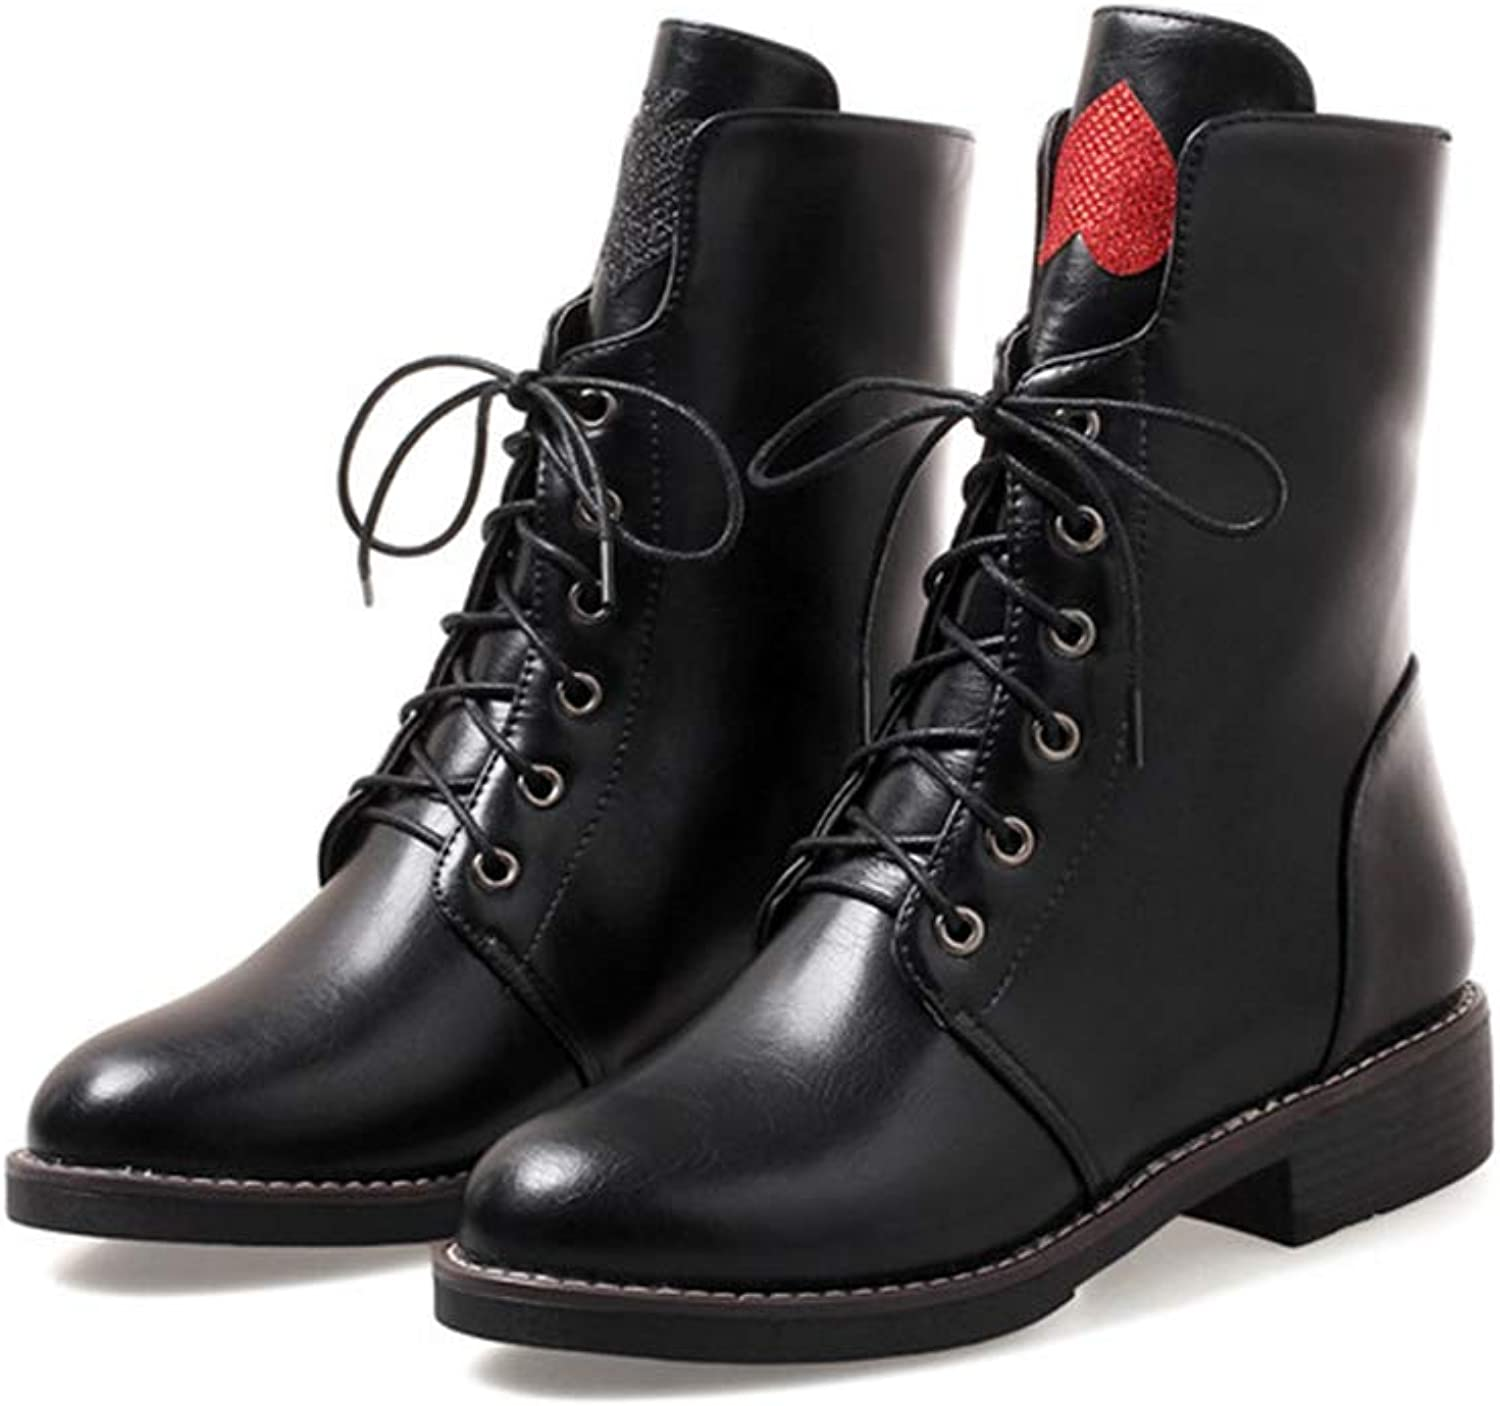 T-JULY Ankle Boots Winter shoes for Women Lace Up Short Boots Square Heel Autumn Fashion Ladies Boots Black